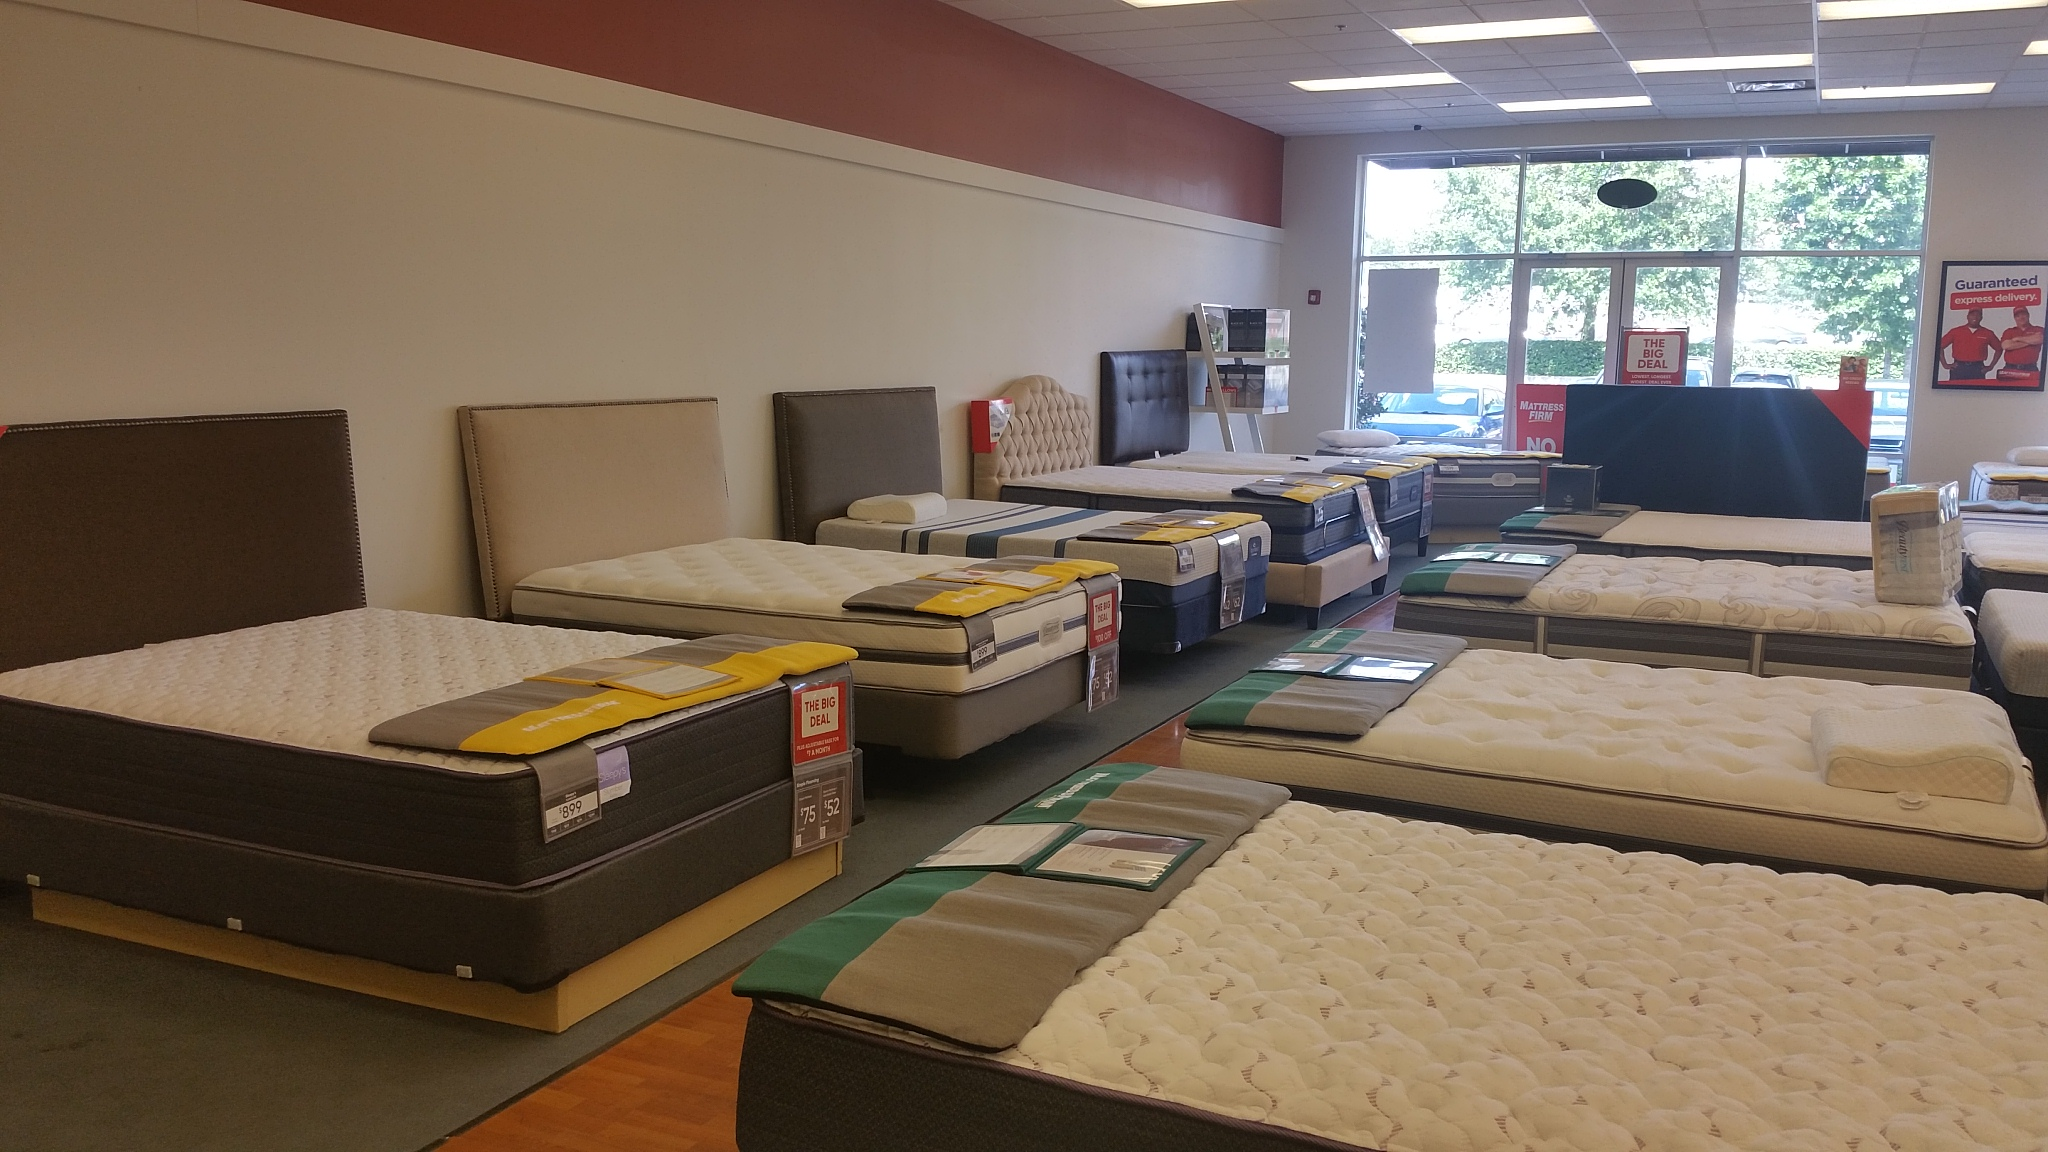 Mattress Firm Doctor Phillips Village - Closed image 5